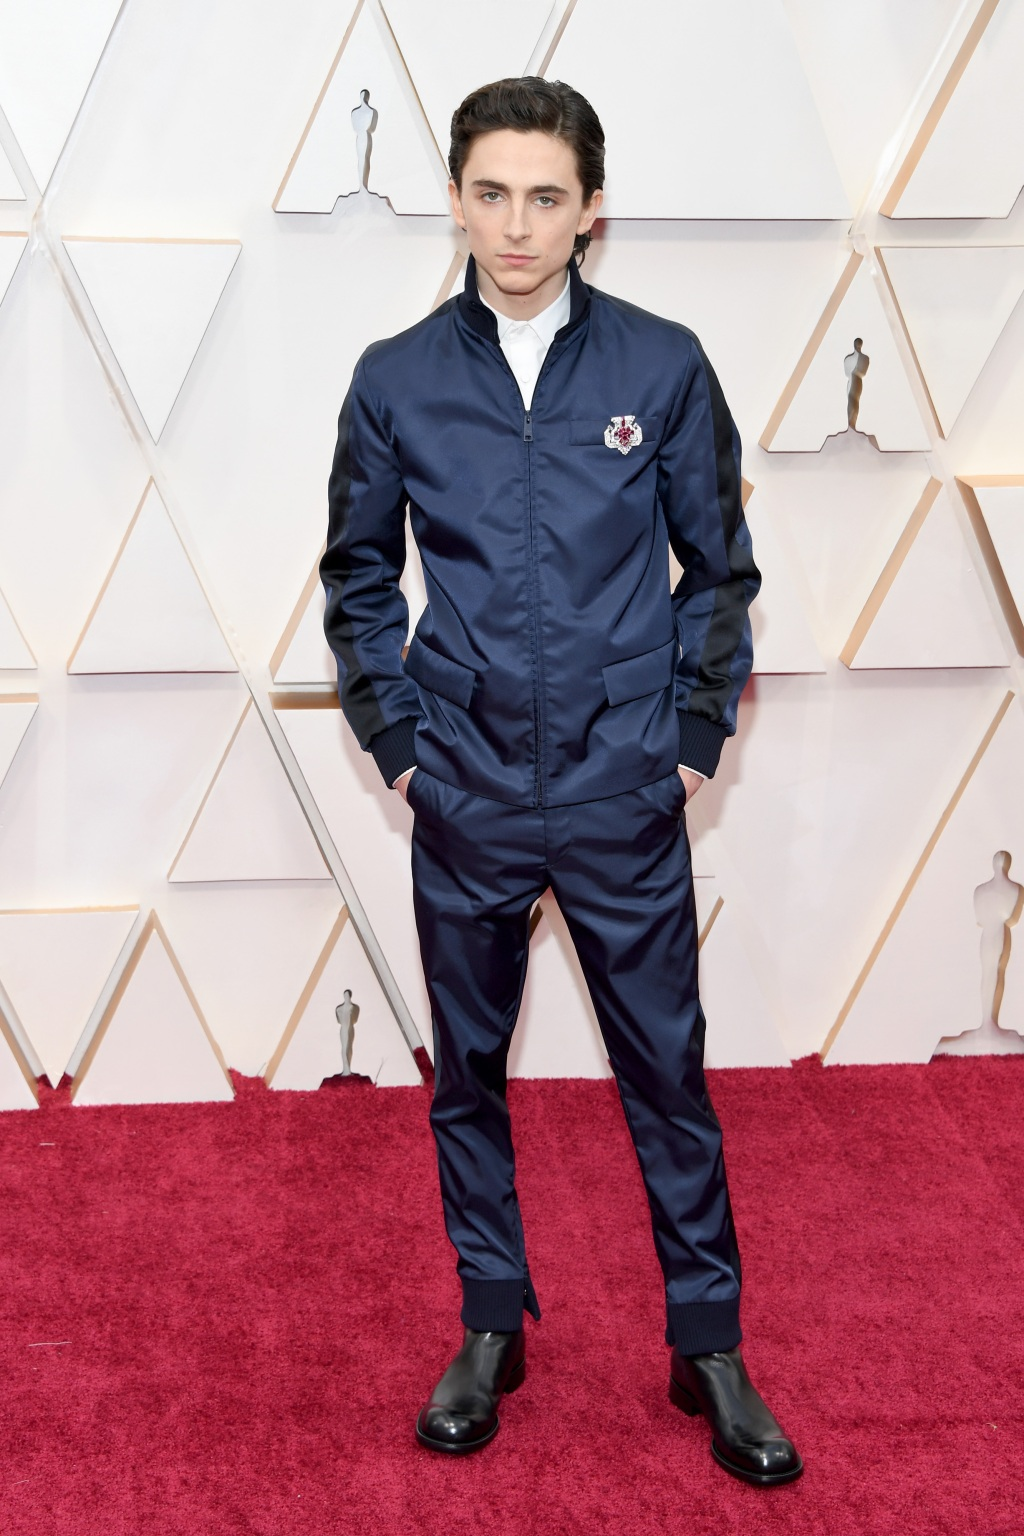 We Have A Bone To Pick With Whoever Faked Timothée Chalamet's Oscars Look